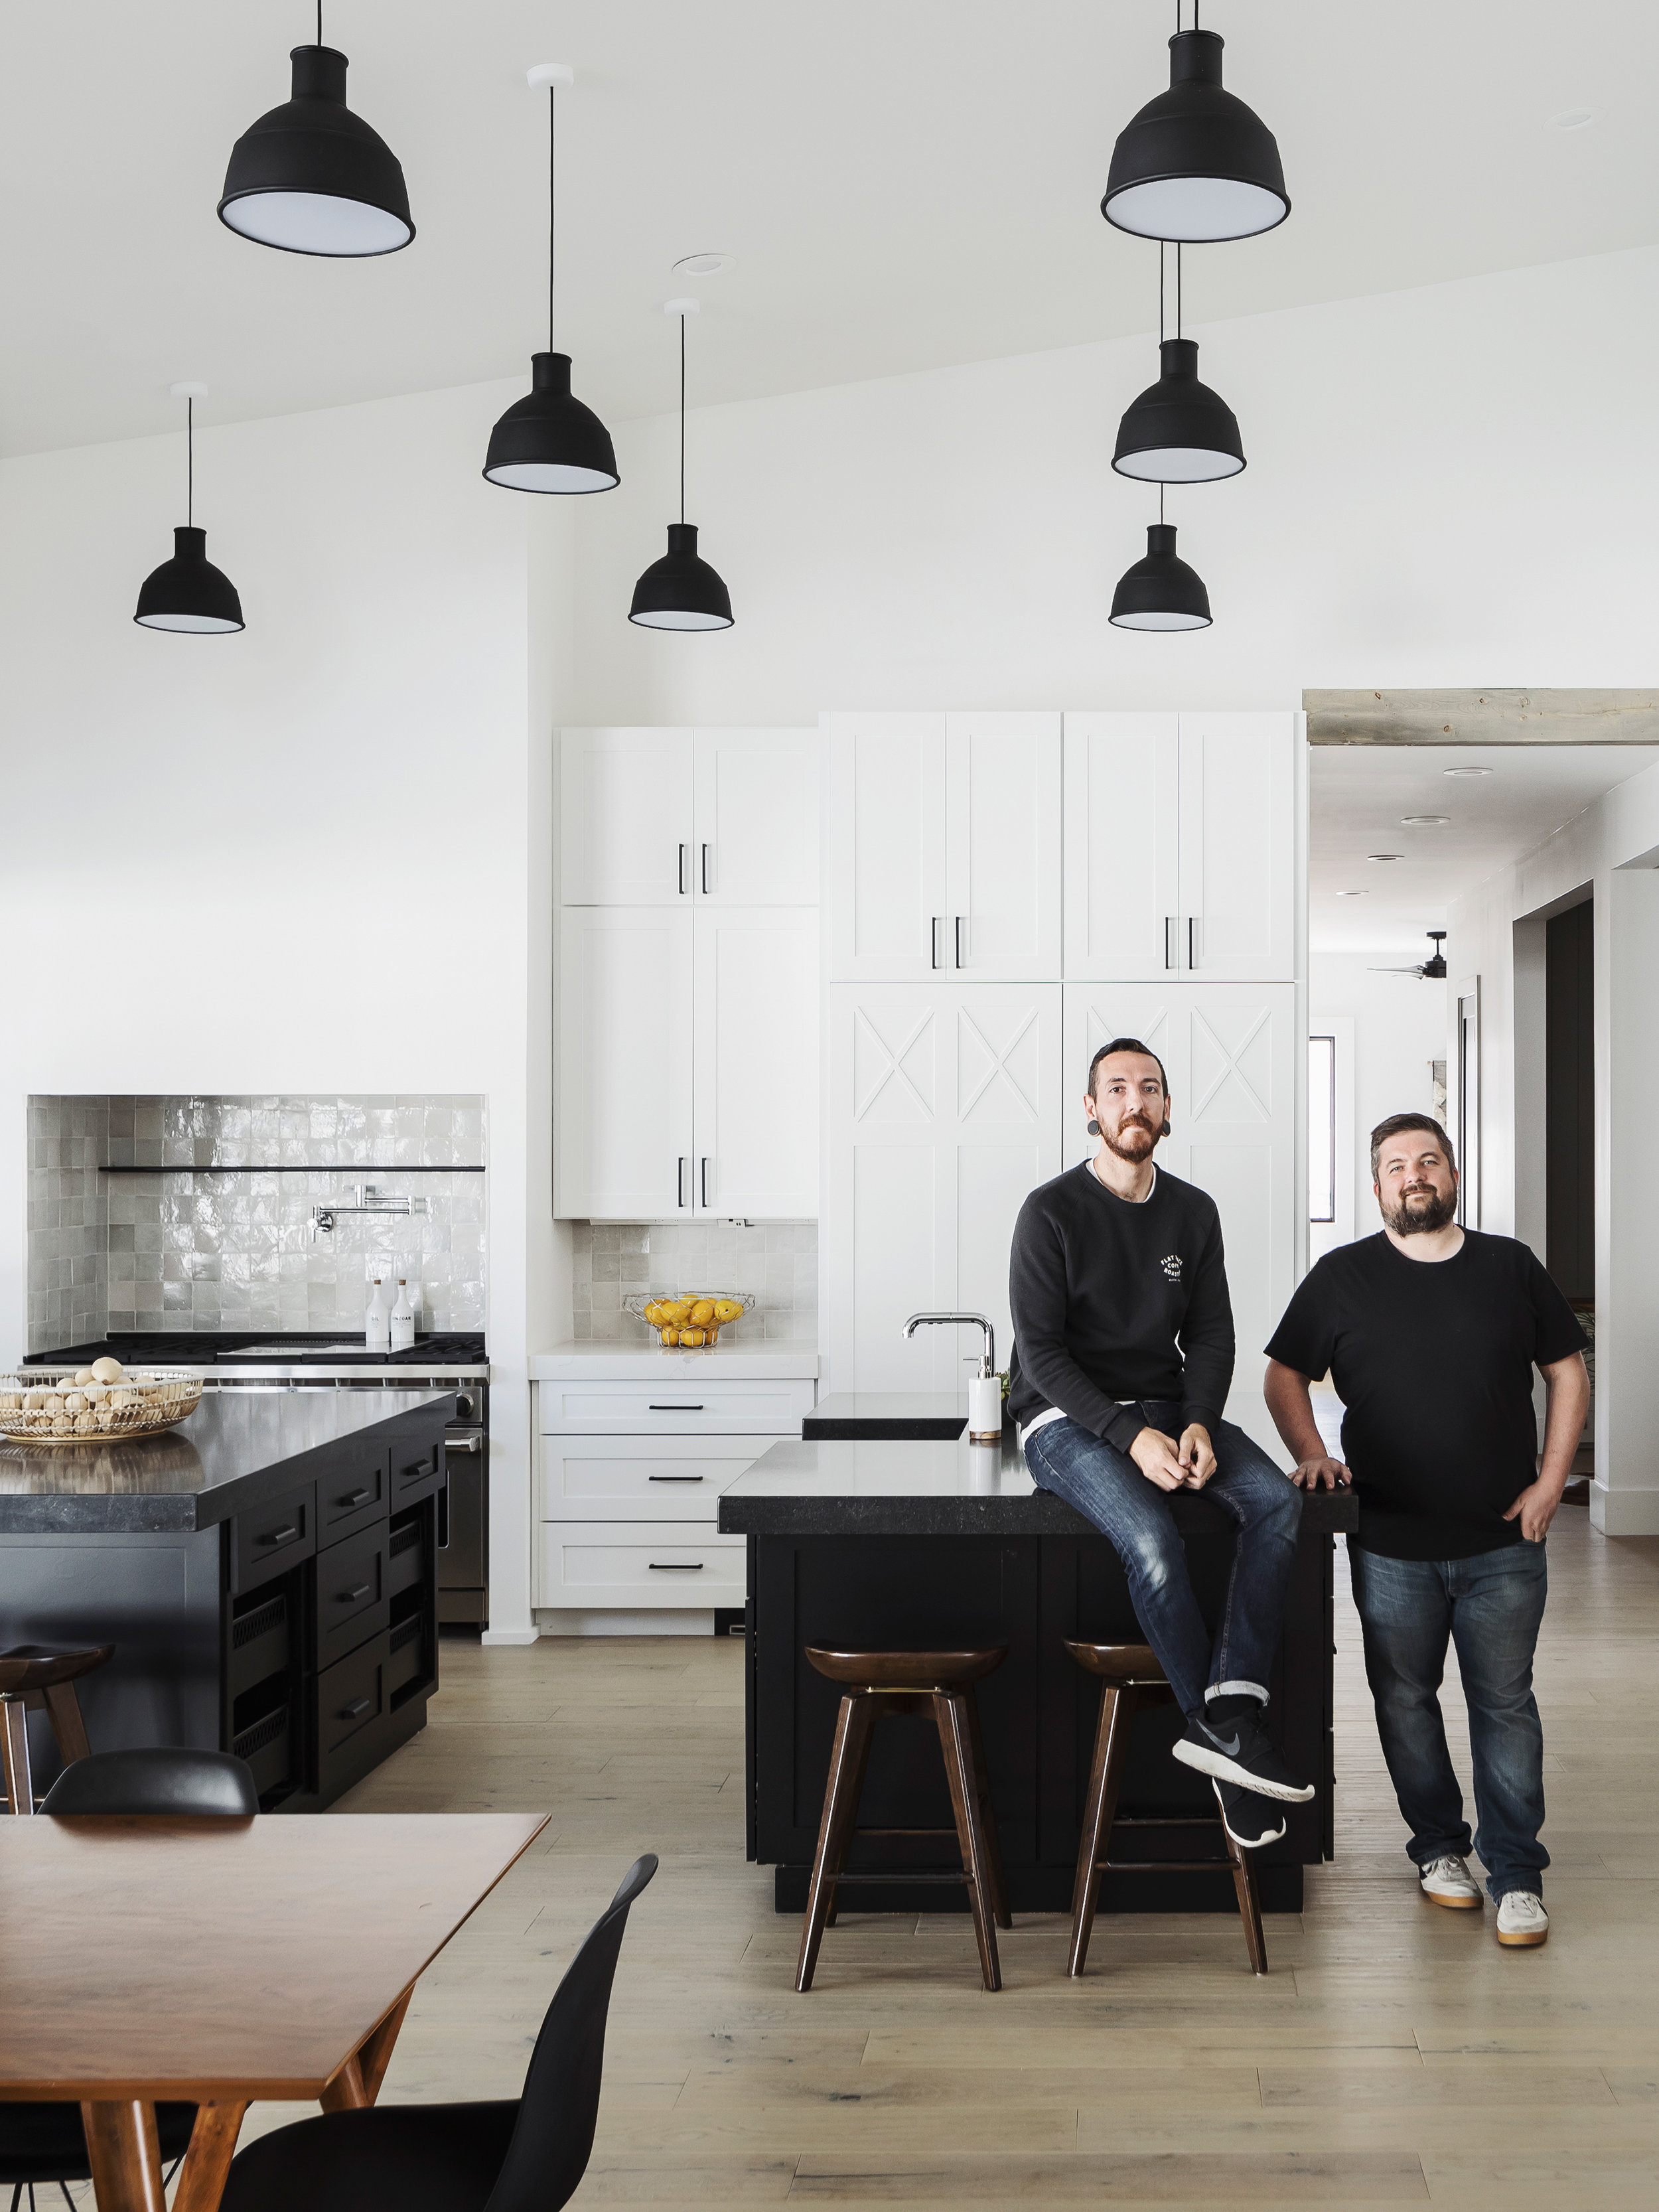 Jason Roehner+ Dan Ryan - live in the desert and photograph thoughtful architecture